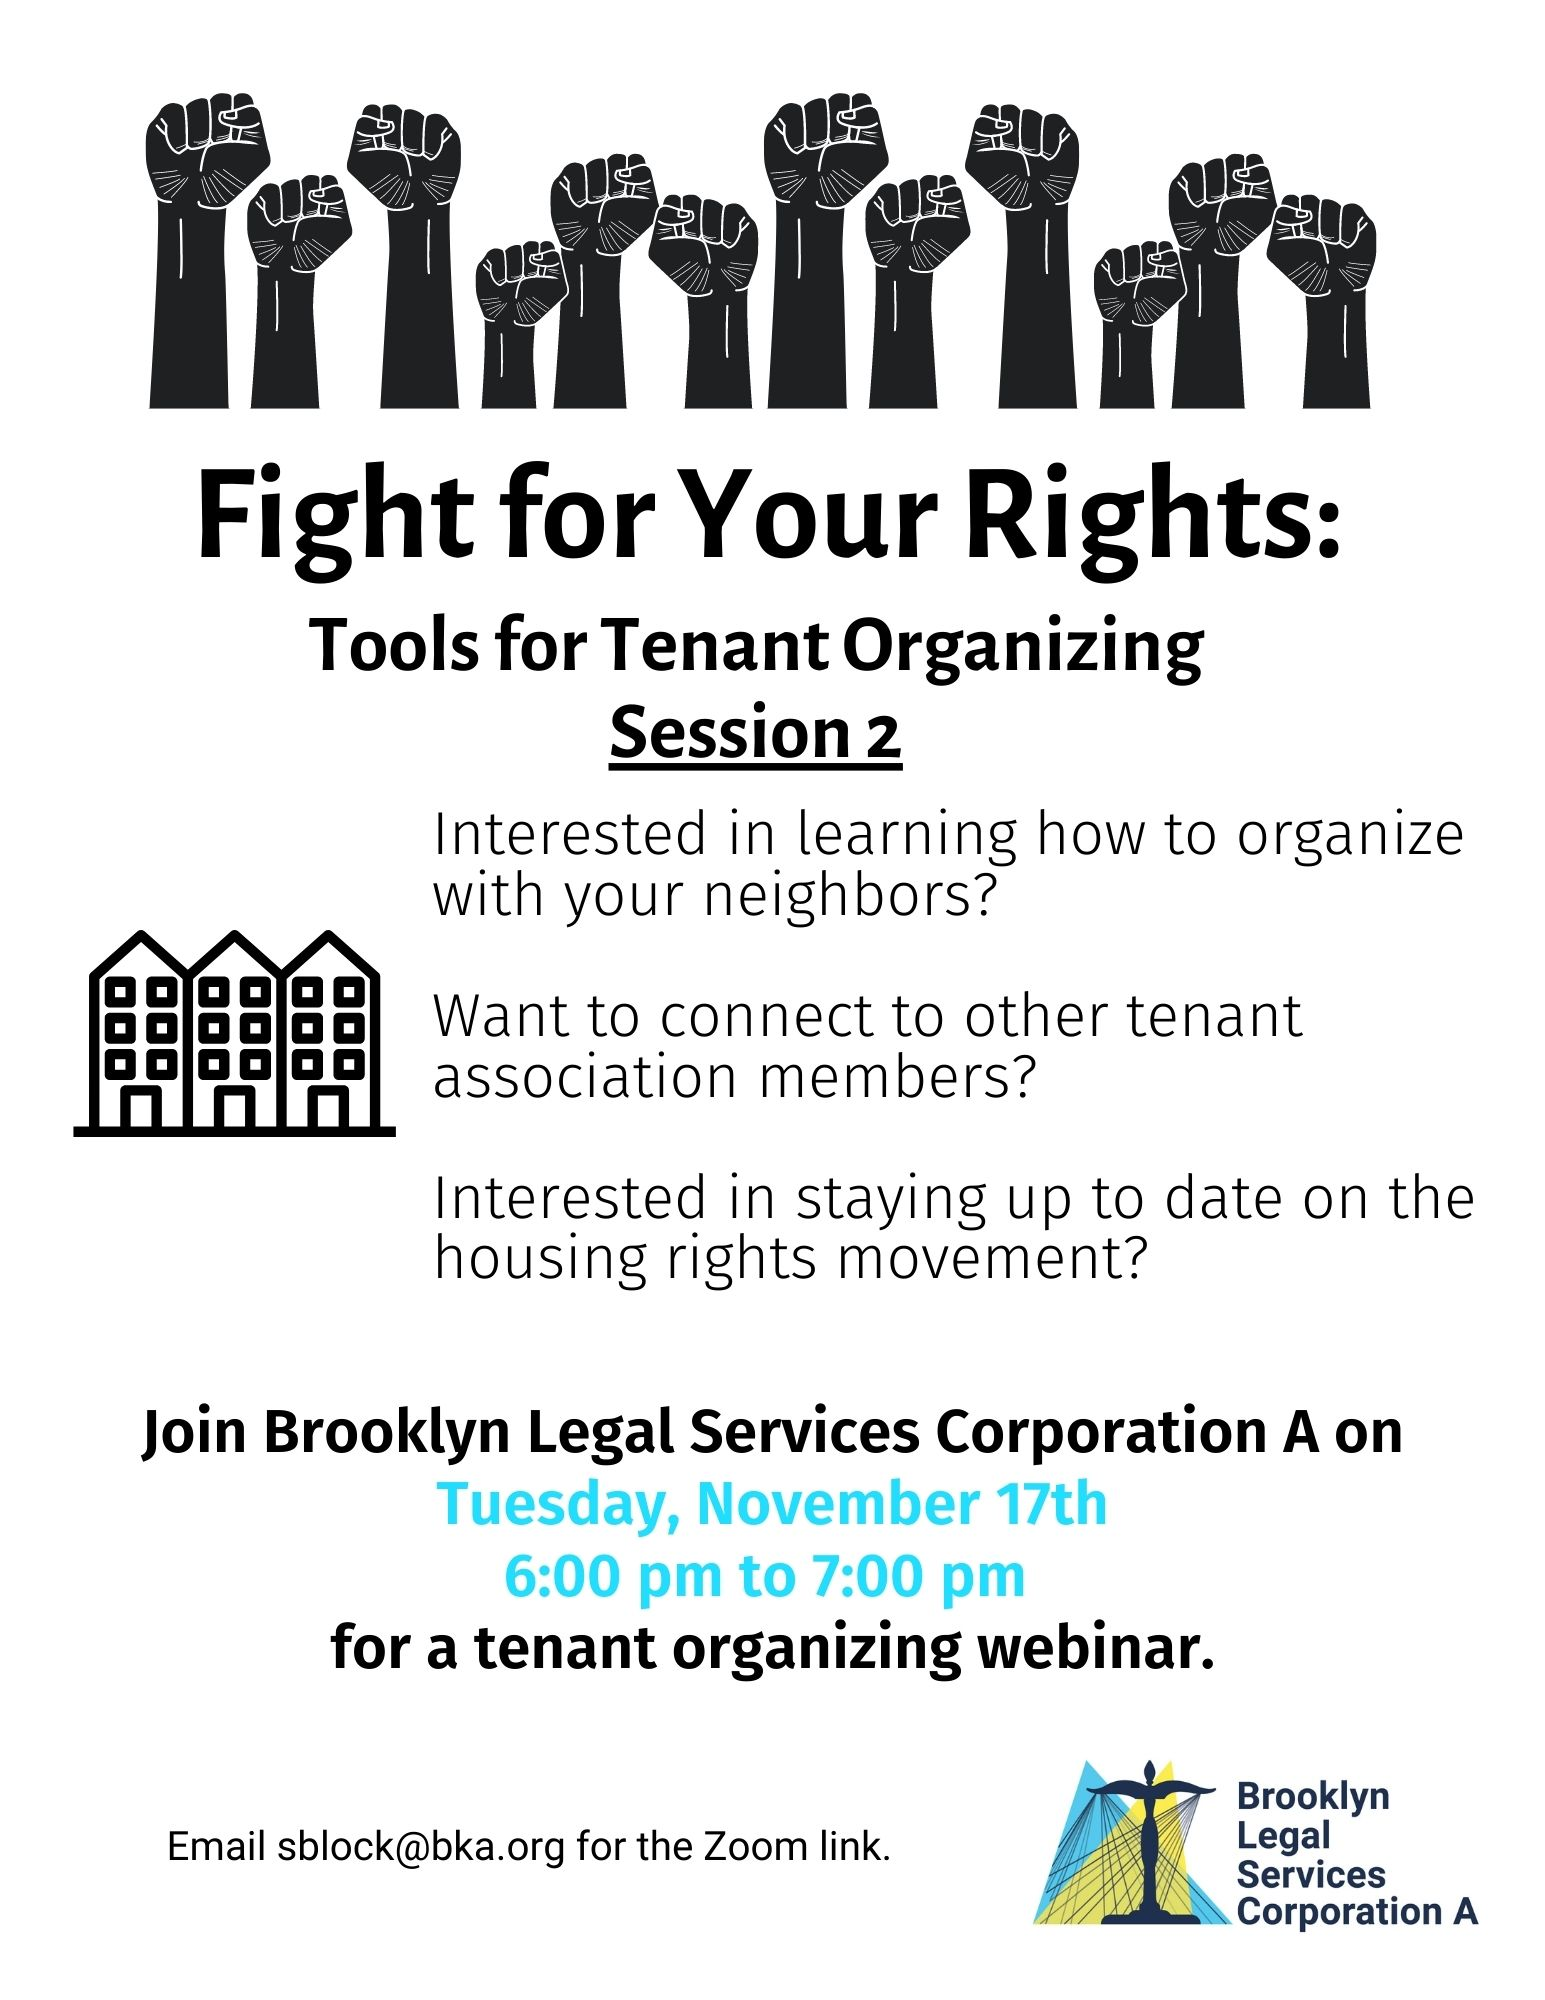 Webinar: Fight For Your Rights: Tools For Tenant Organizing Session #2 – November 17th, 2020 At 6 Pm